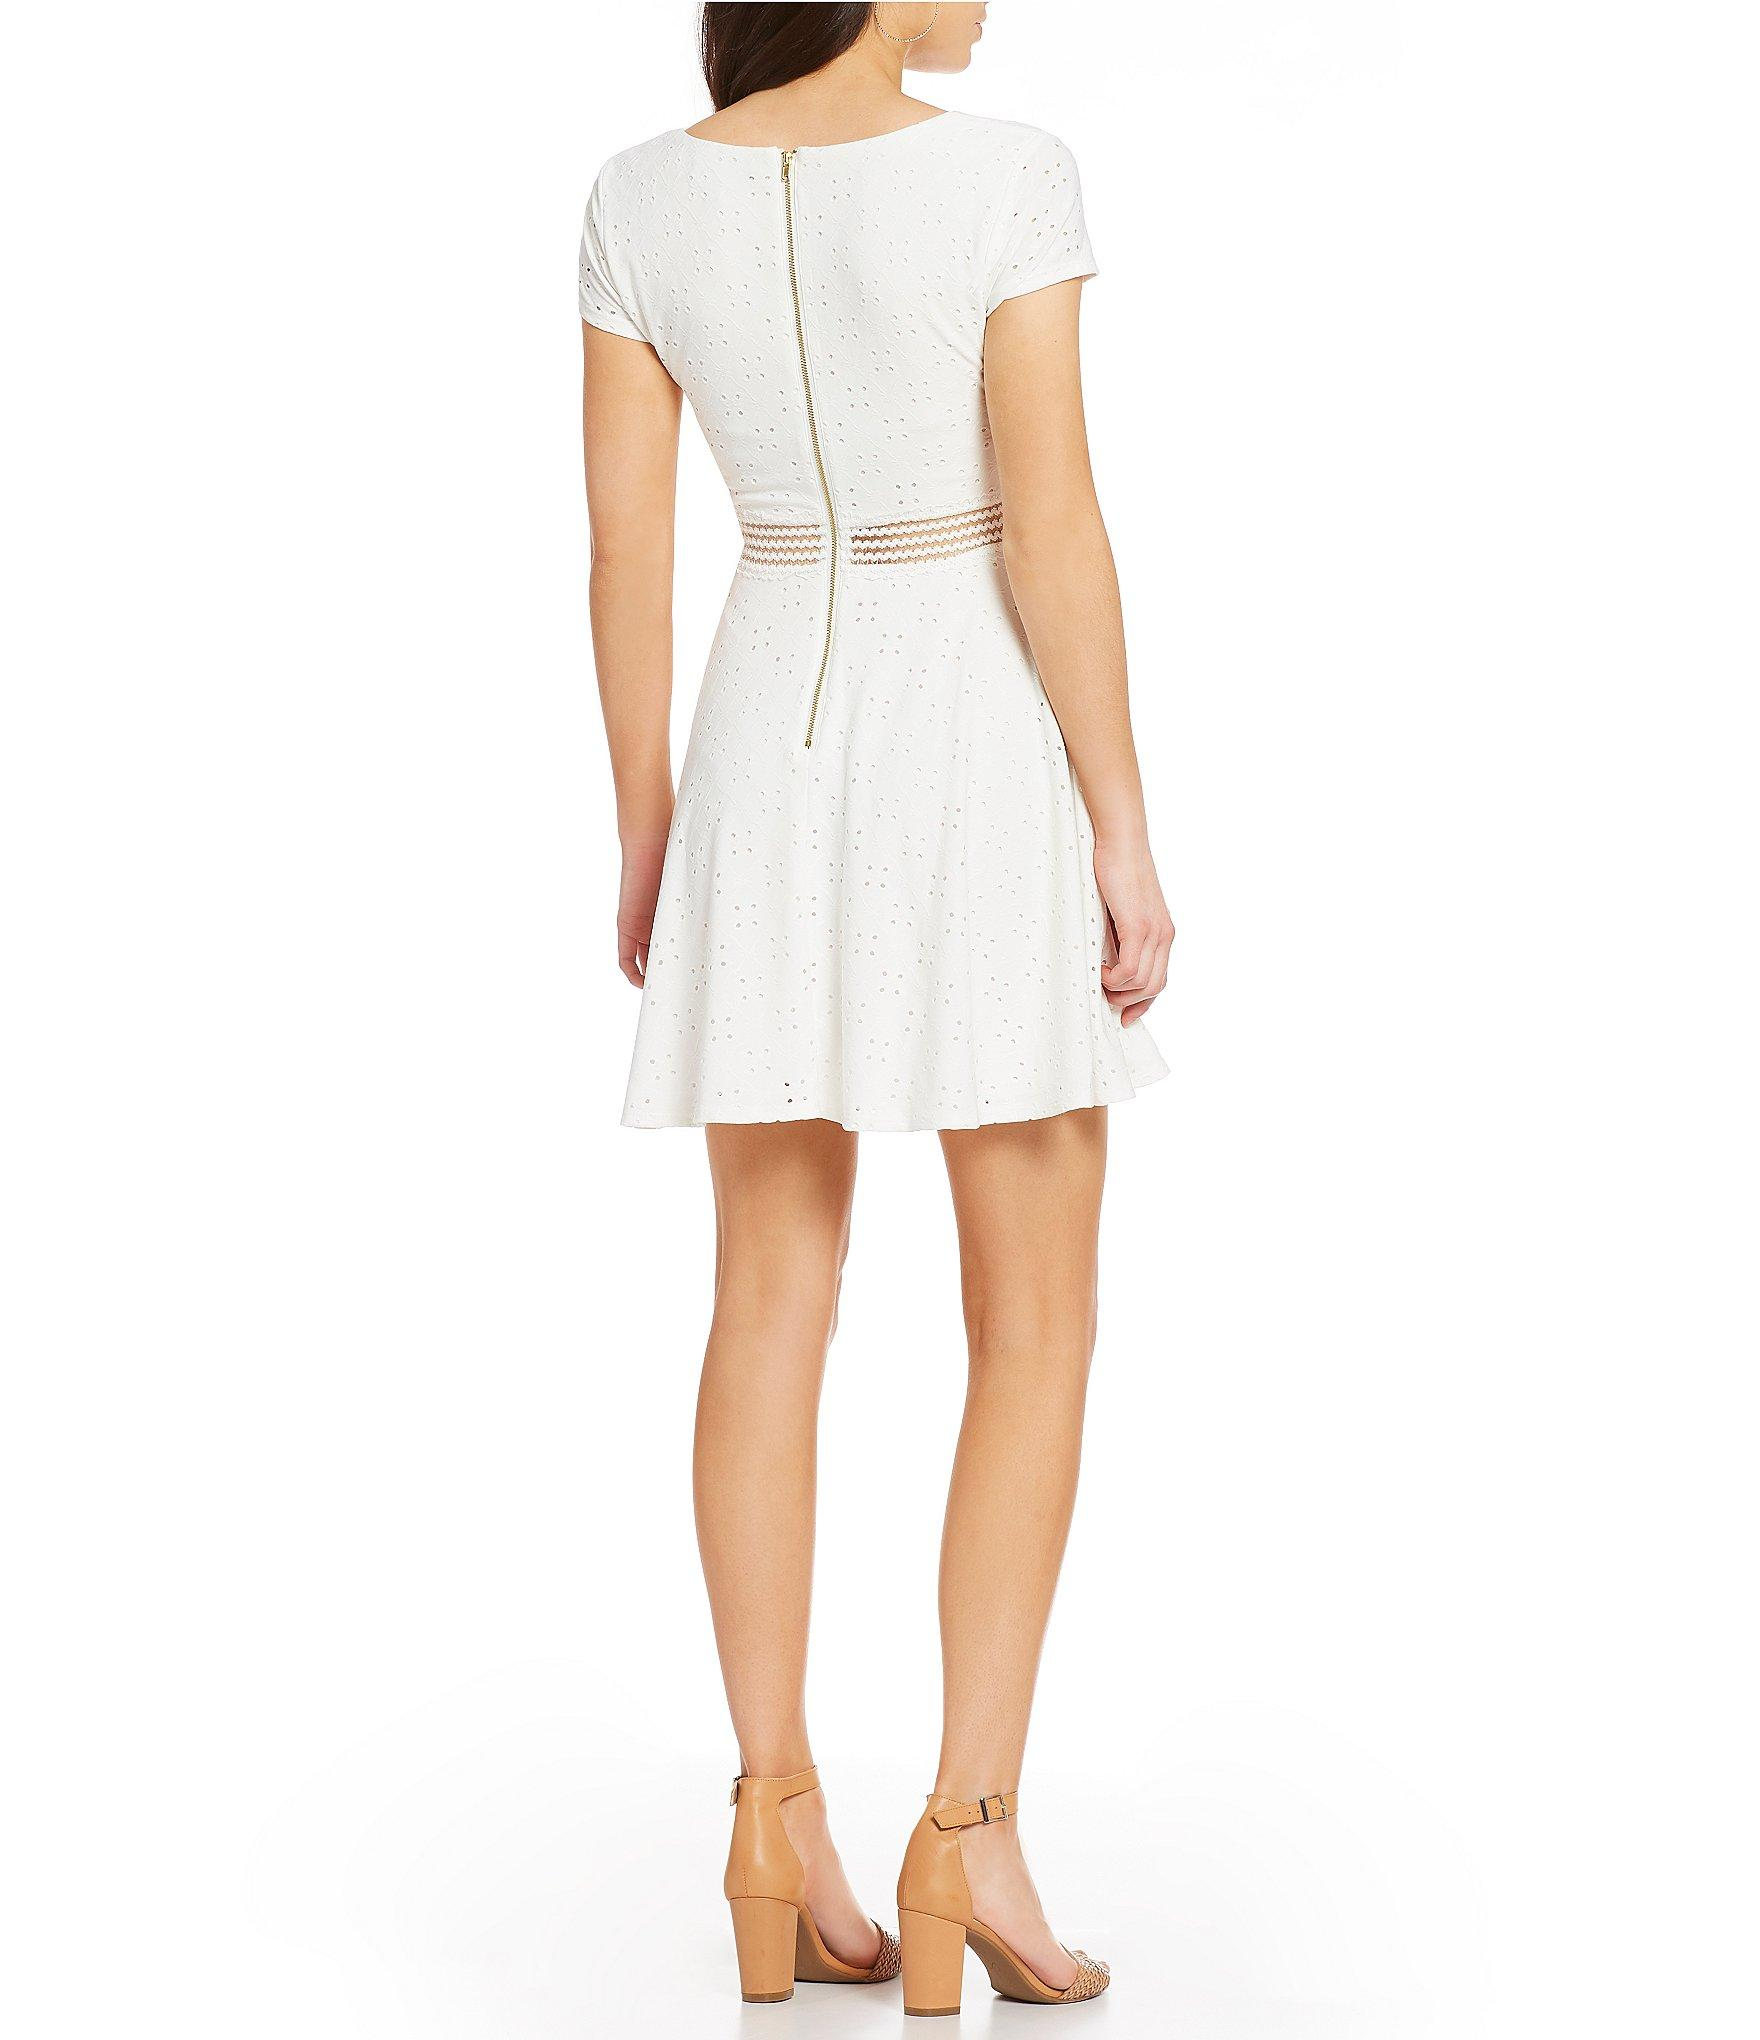 355ced07d0 Sequin Hearts - White Eyelet Knit Fit-and-flare Dress - Lyst. View  fullscreen